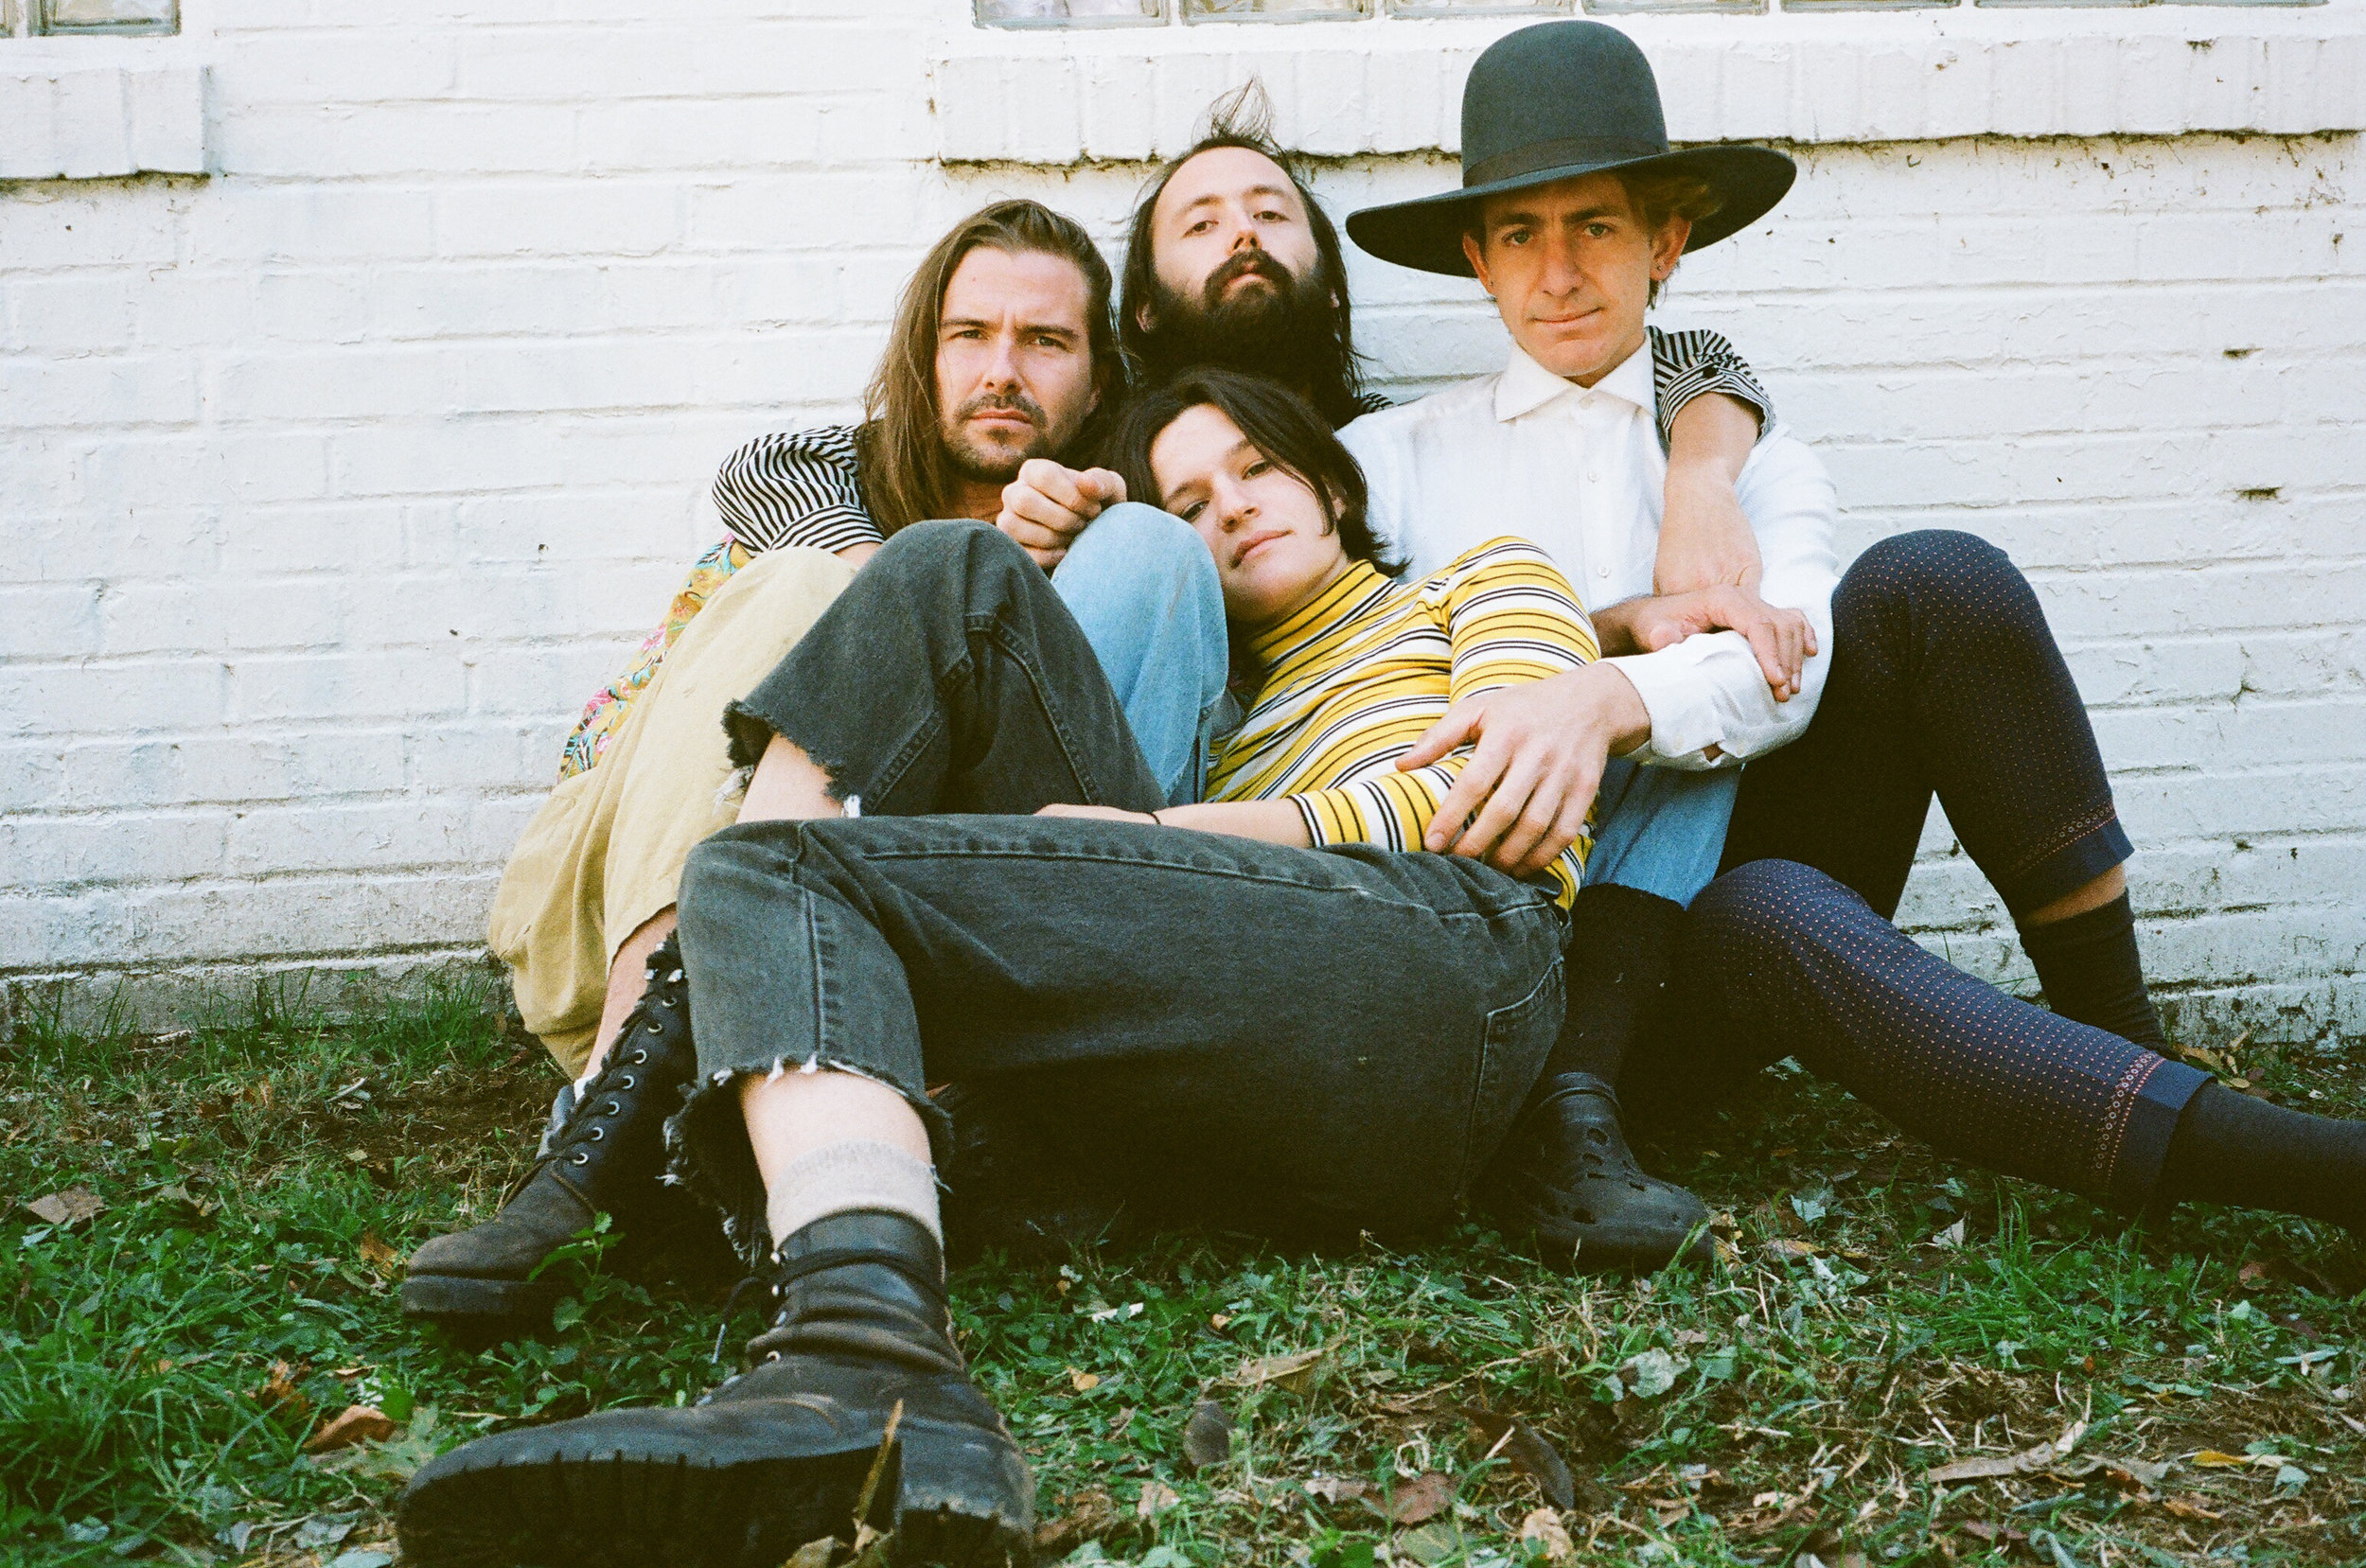 Big_Thief_2019_photo.JPG